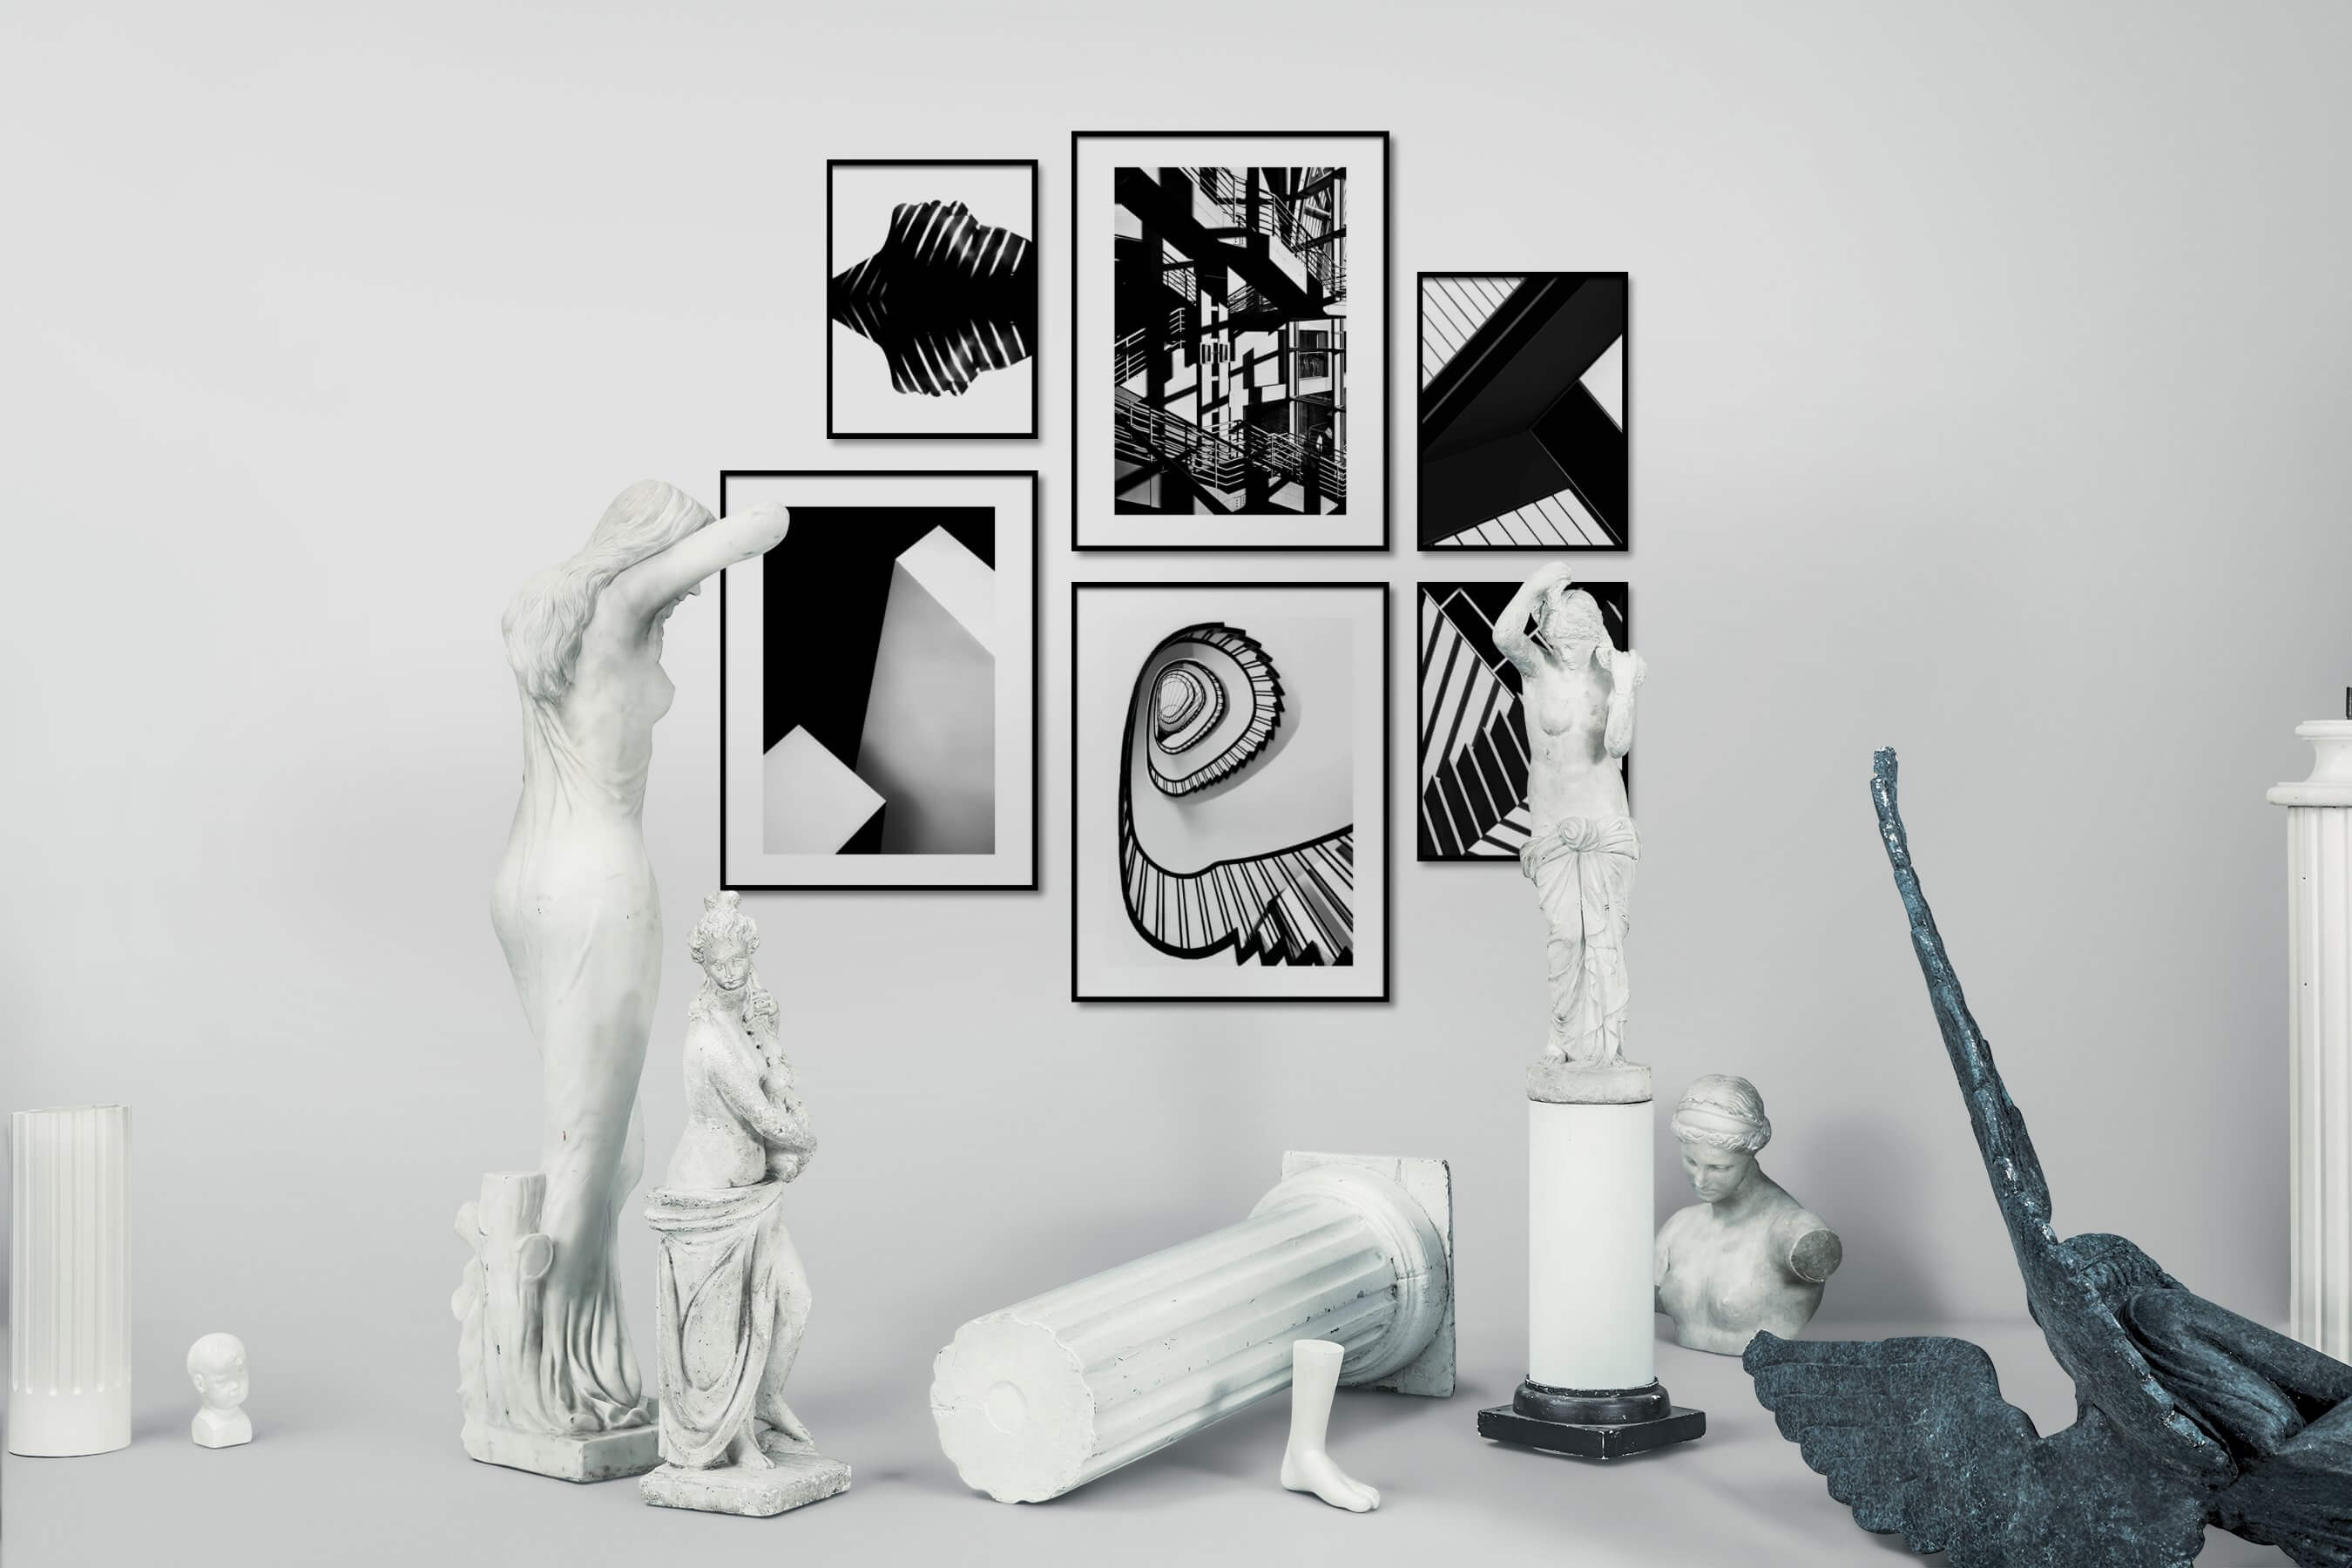 Gallery wall idea with six framed pictures arranged on a wall depicting Black & White, Bright Tones, For the Minimalist, For the Maximalist, City Life, and For the Moderate